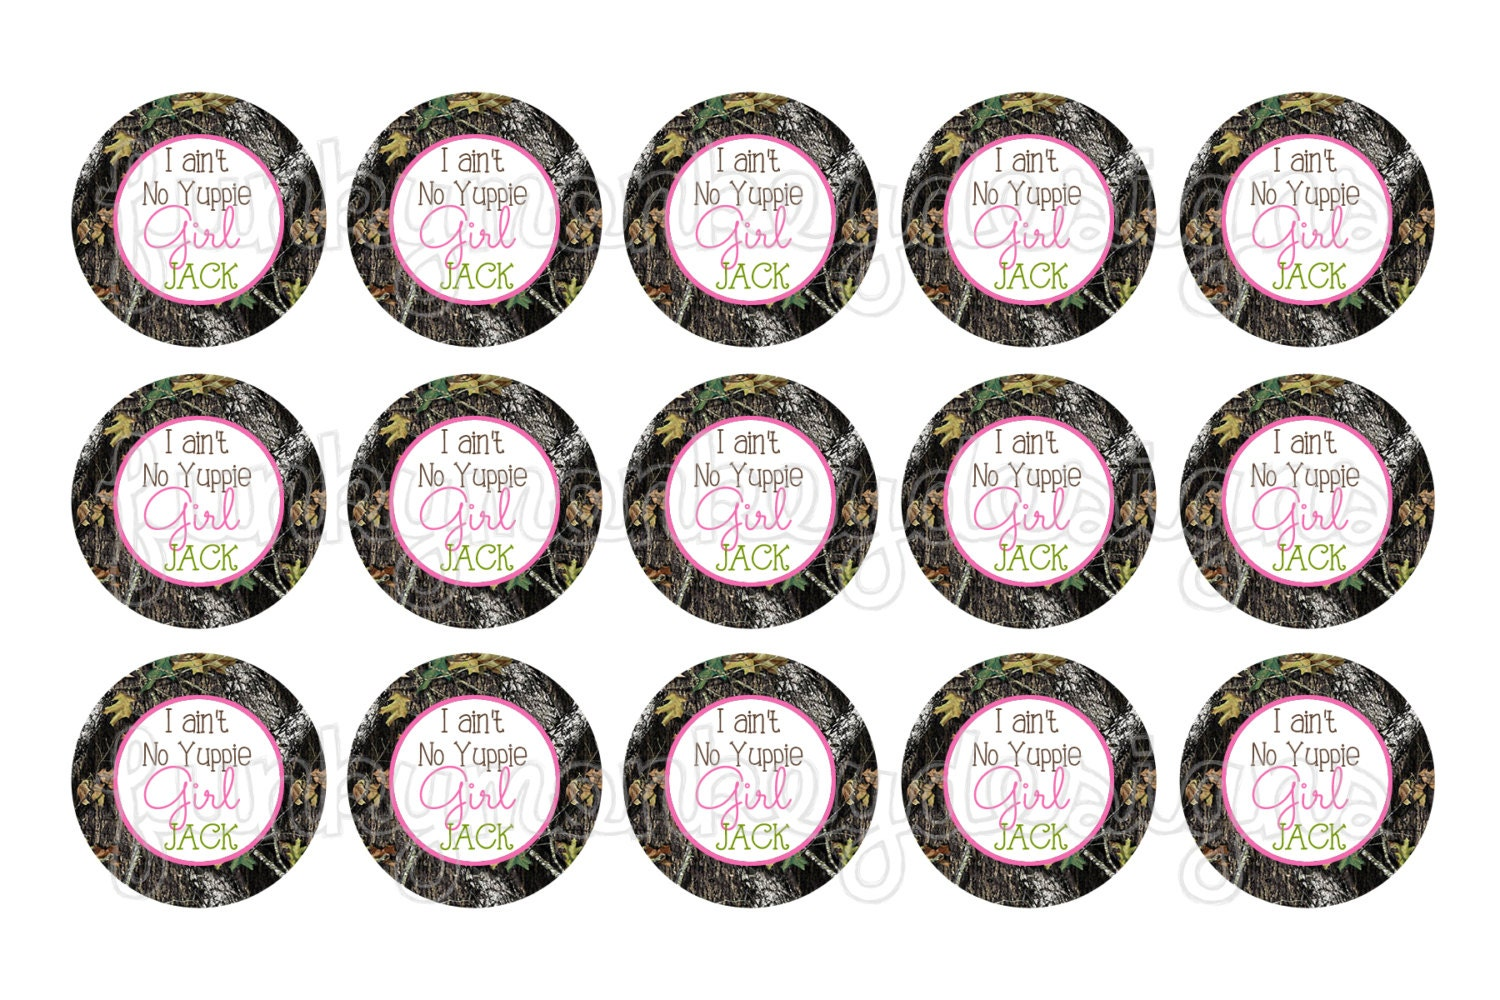 """INSTANT DOWNLOAD ~Pink Camo Duck Dynasty~ """"I Ain't No Yuppie Girl Jack"""